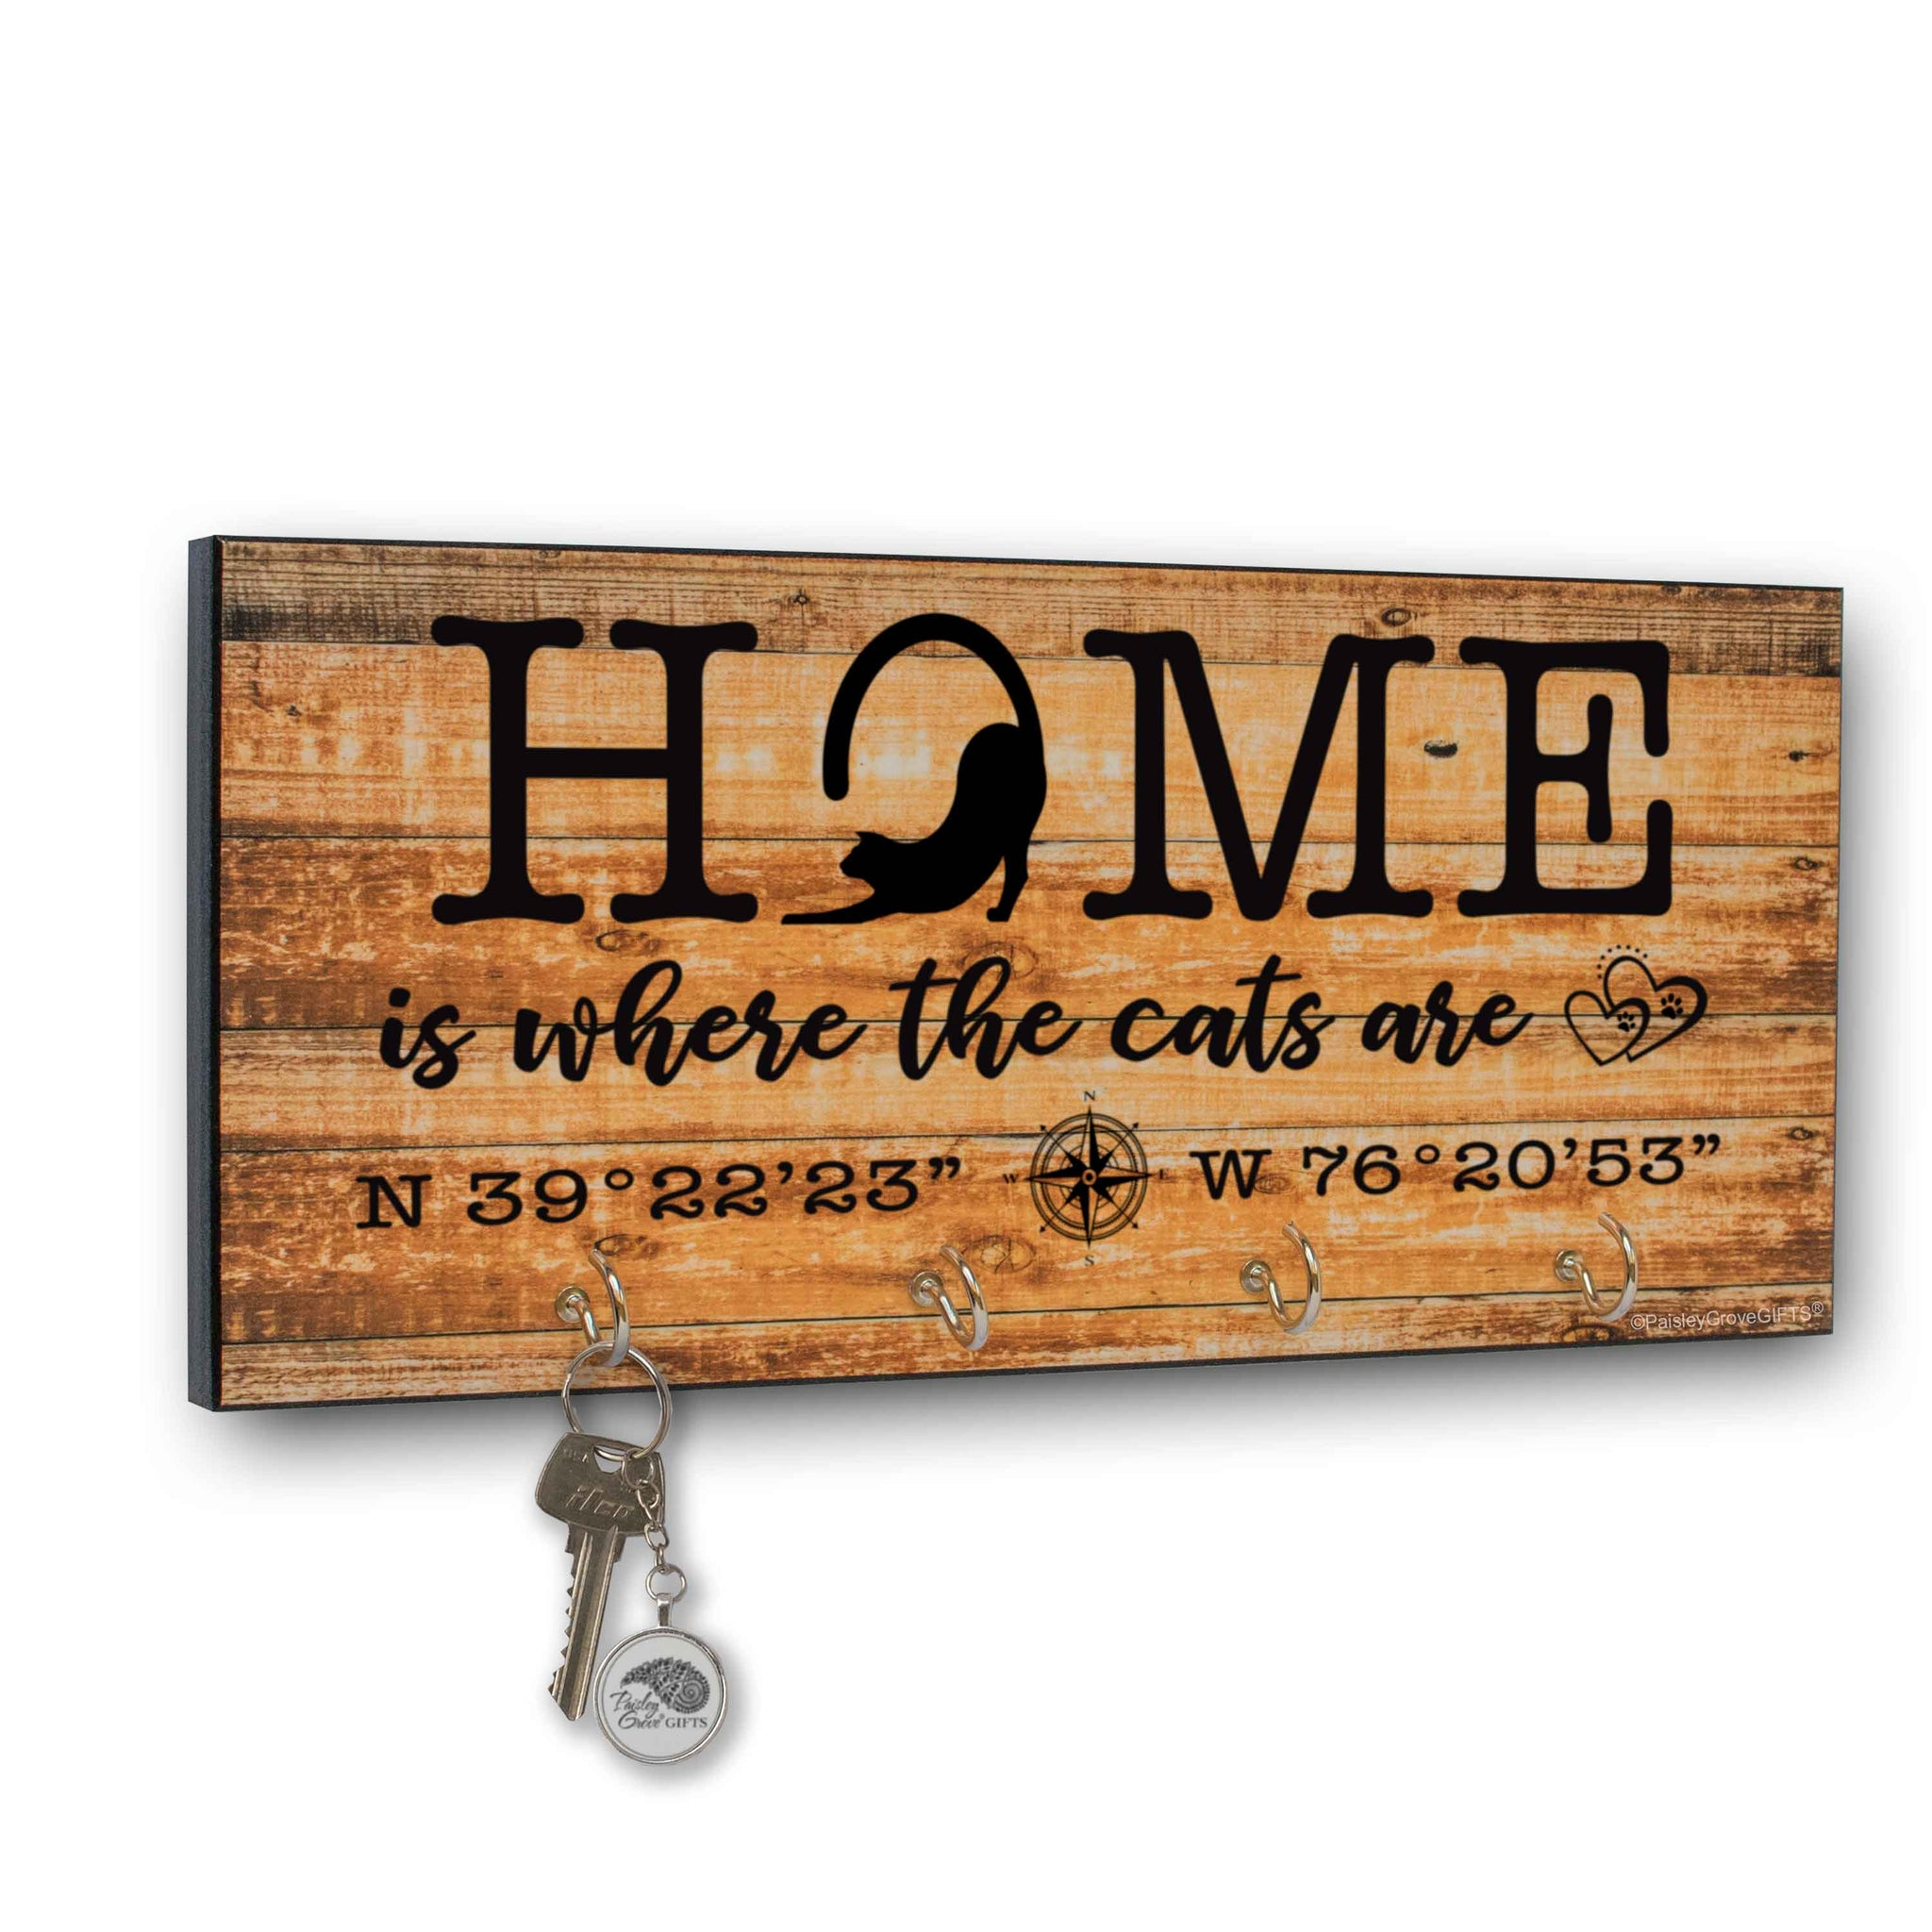 CopyrightPaisleyGroveGIFTS S307e Home is where the cats are key holder for wall with coordinates farmhouse style print